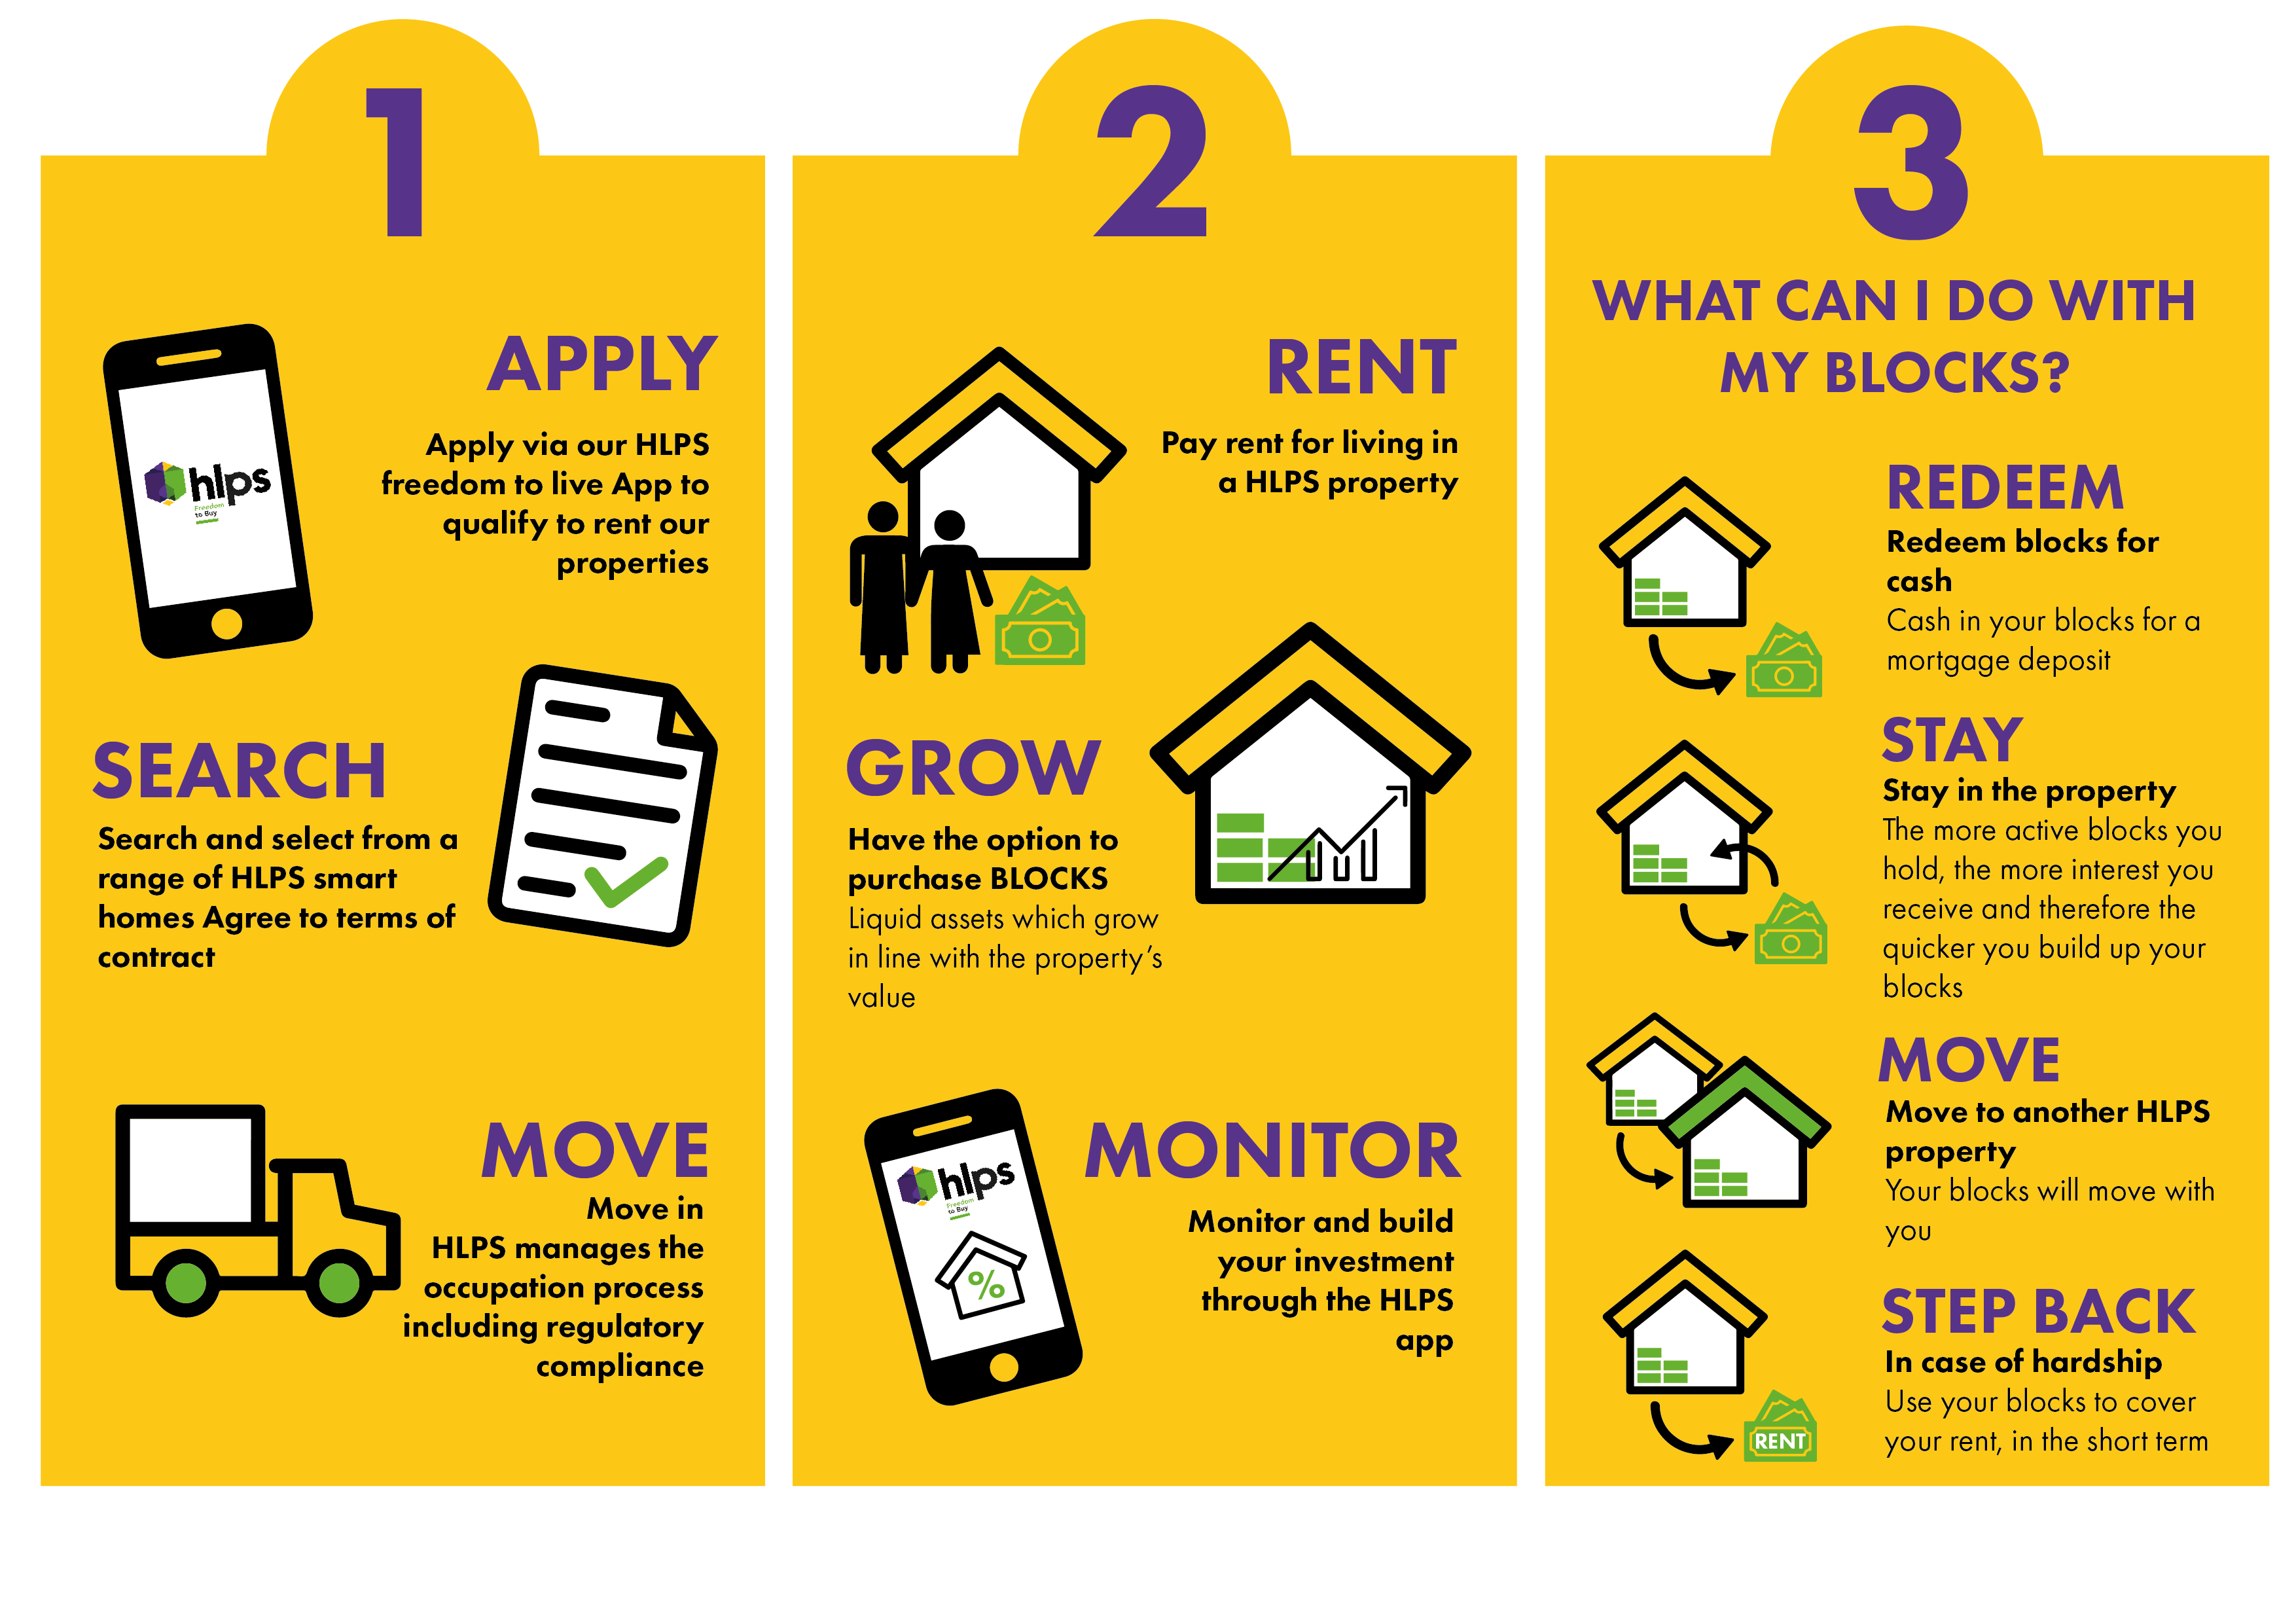 Steps 1,2 and 3 of the process explained under 4-residents page